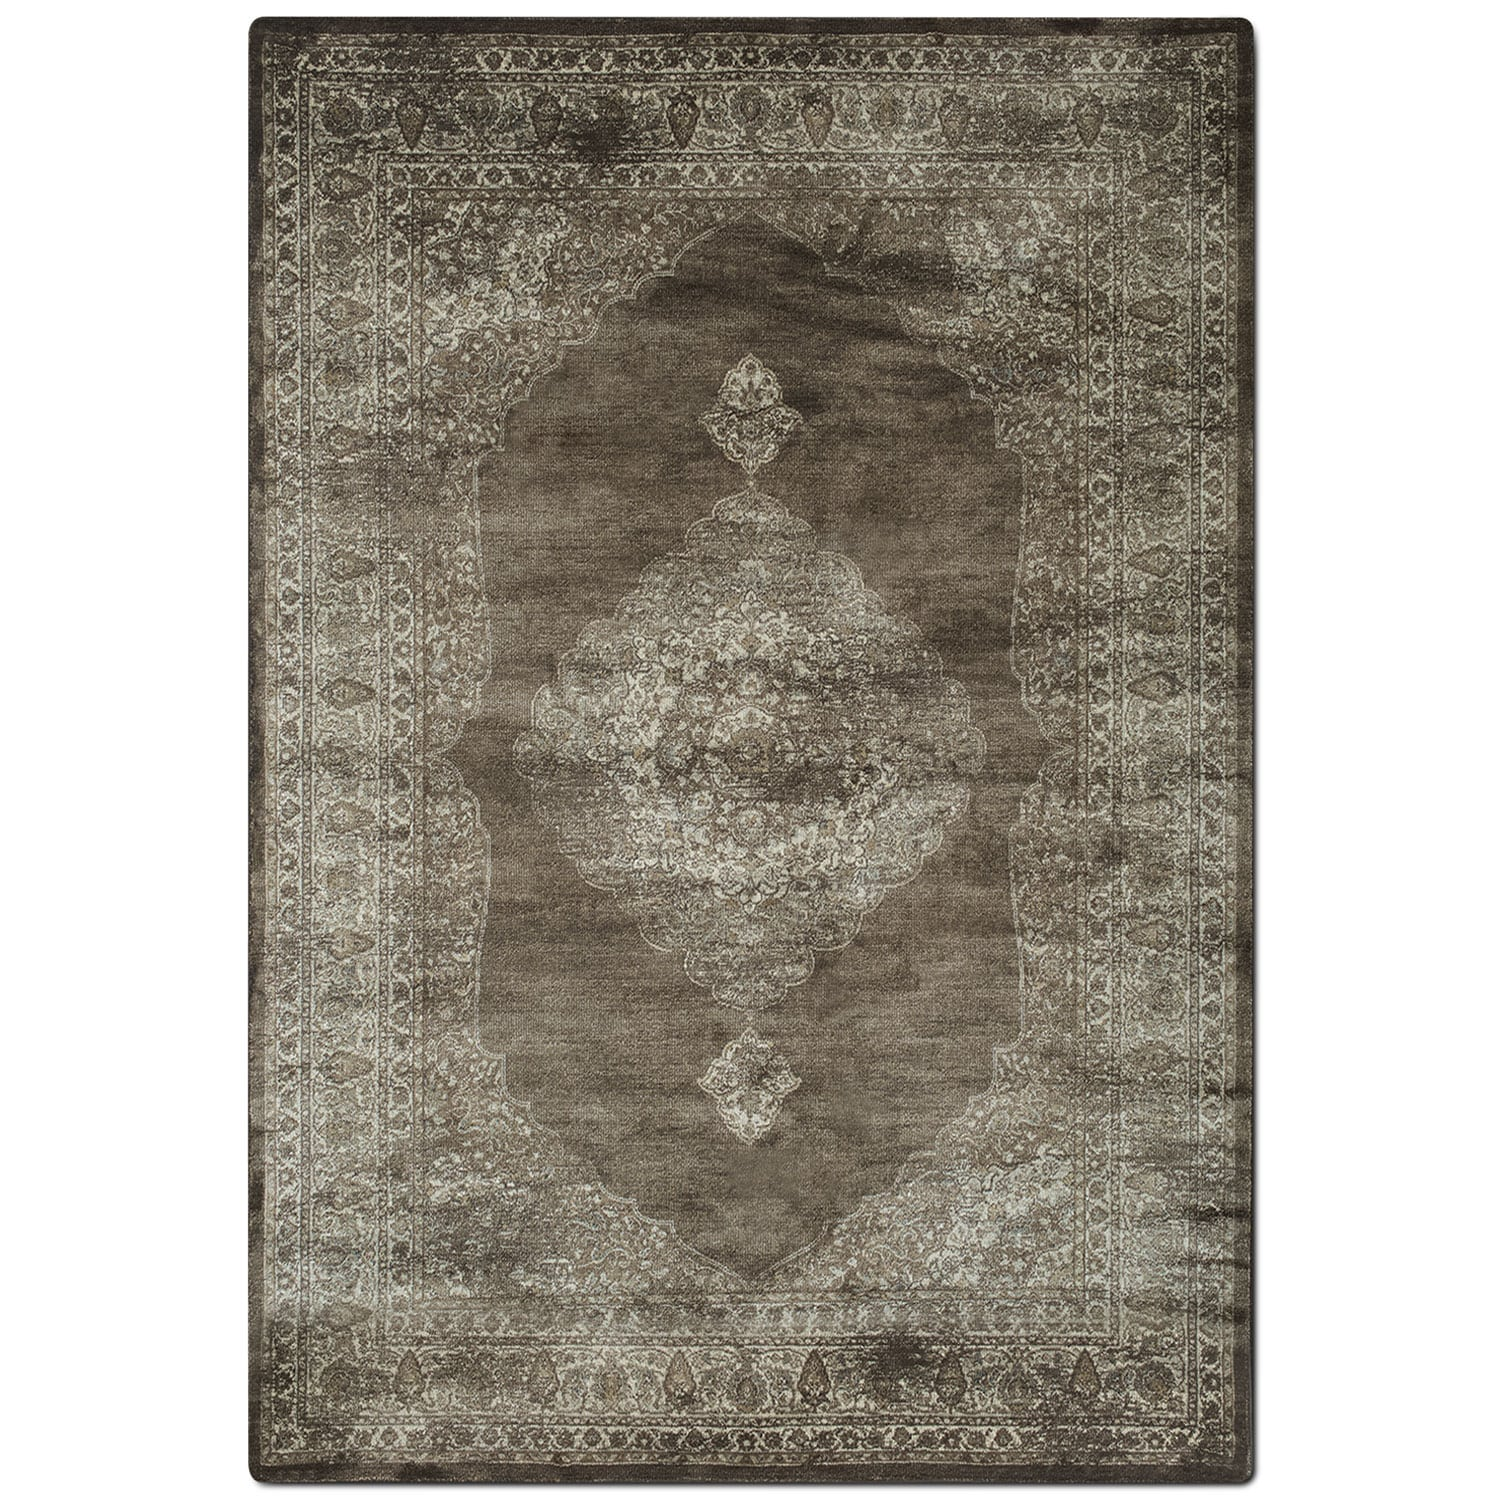 Sonoma 5' x 8' Area Rug - Ivory and Beige